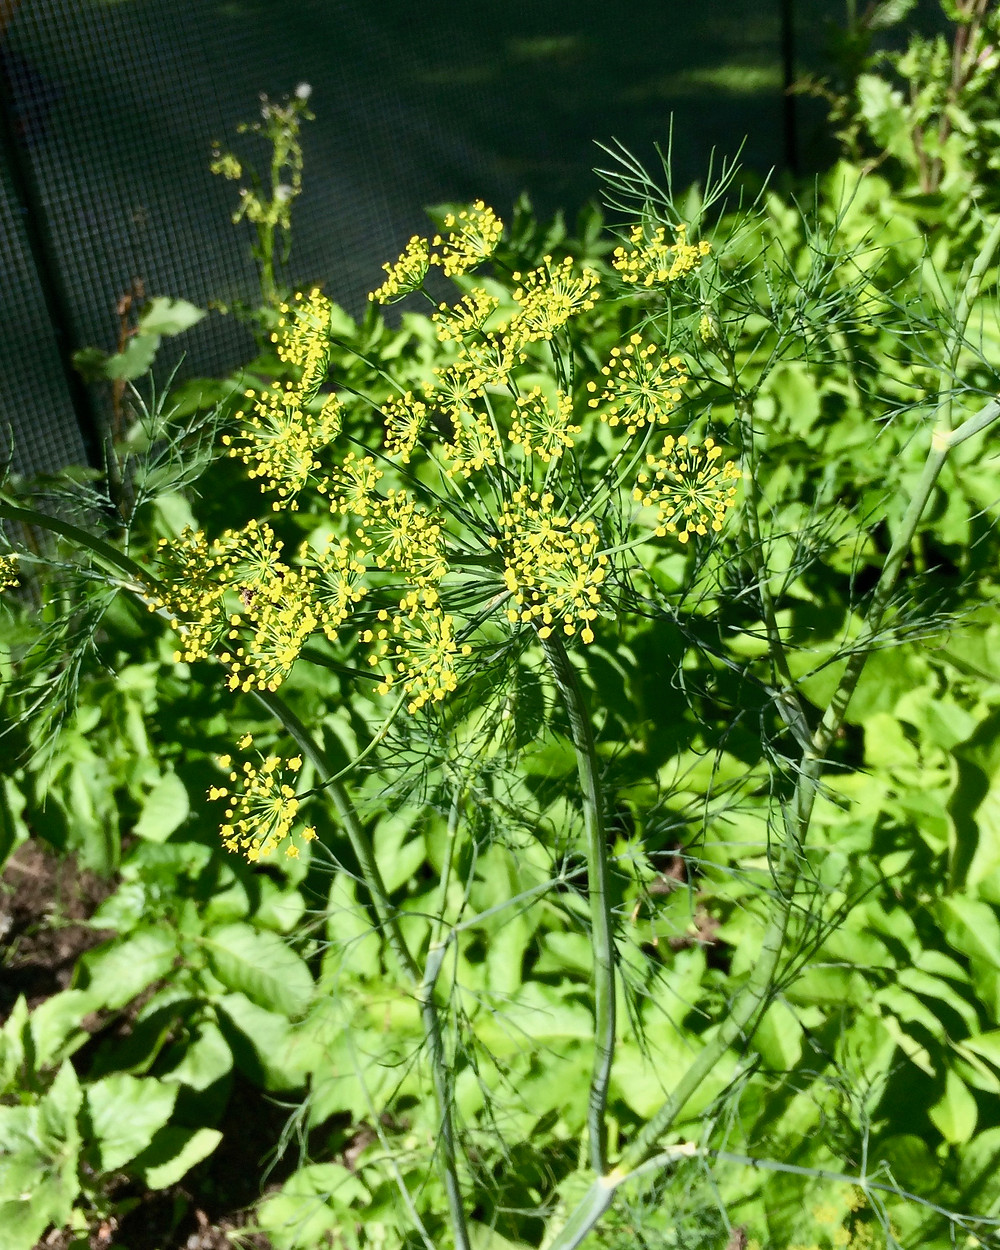 Dill flowers and potatoes growing in the vegetable garden